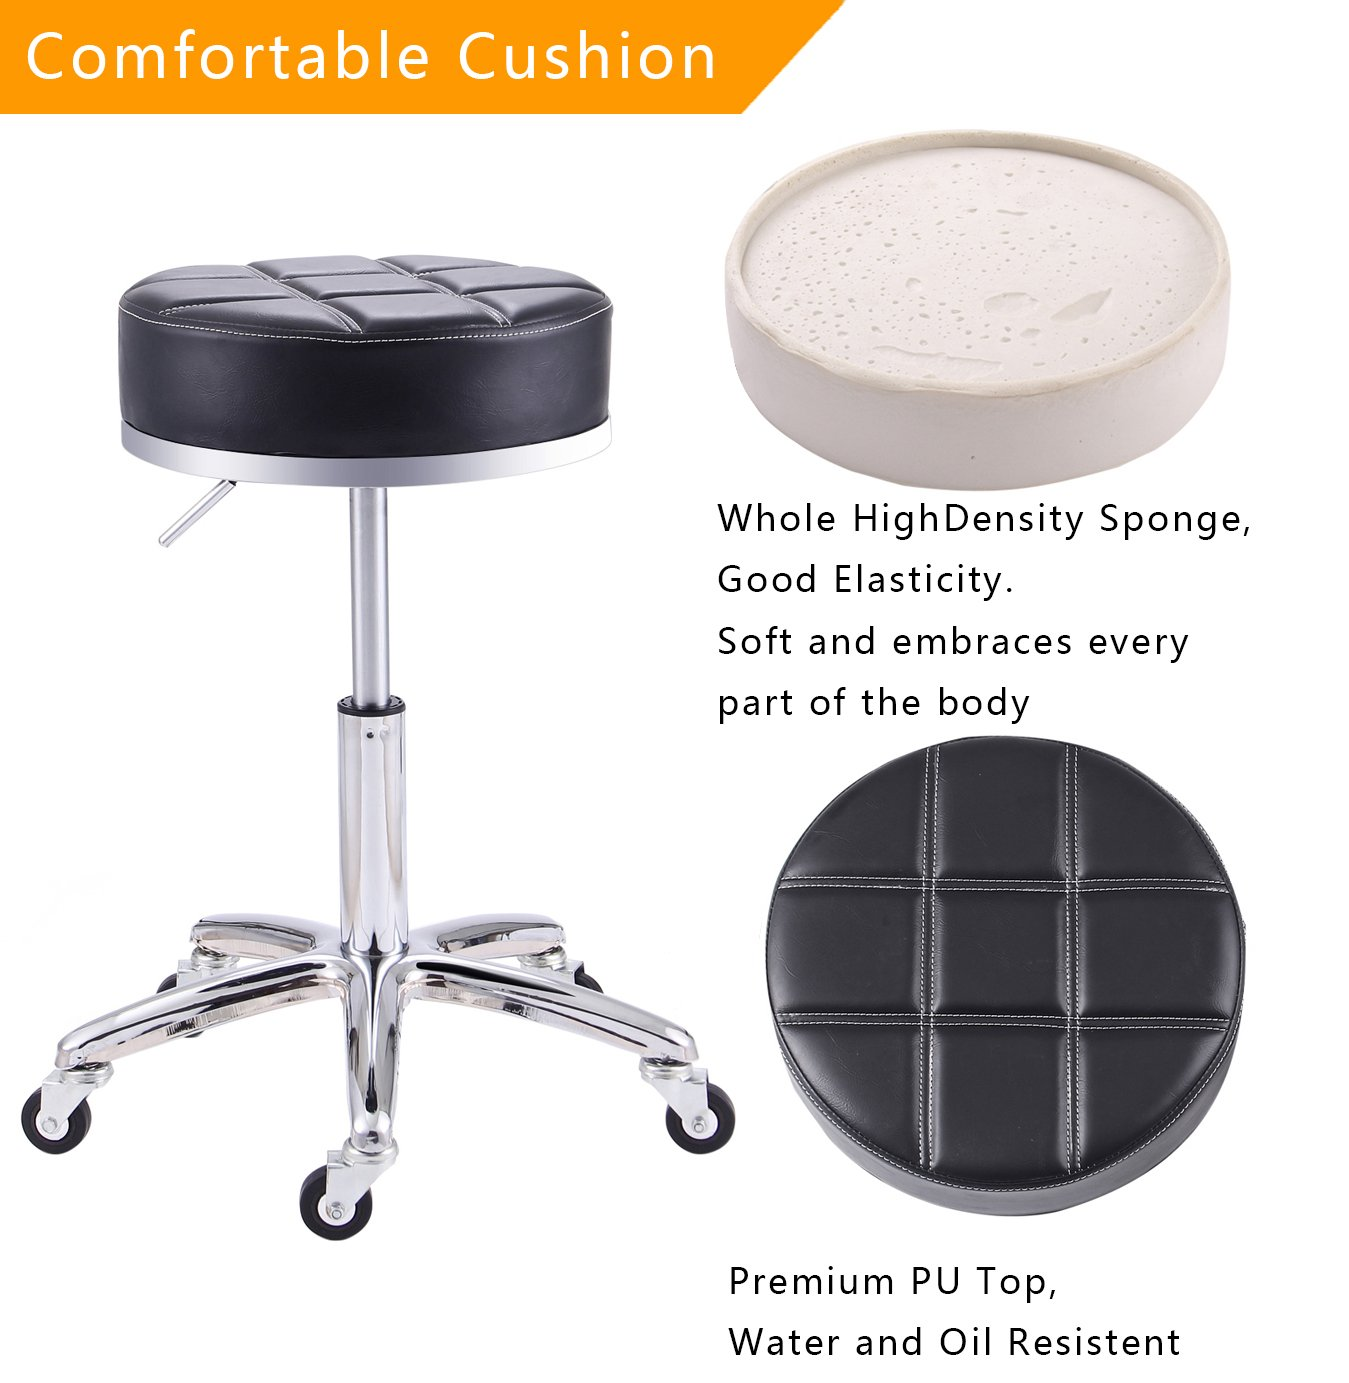 Rfiver Modern PU Leather Relief Hydraulic Adjustable Swivel Drafting Stool Chair for Salon Spa Massage Kitchen Office Shop Club Bar in Black SC1004-1 by Rfiver (Image #4)